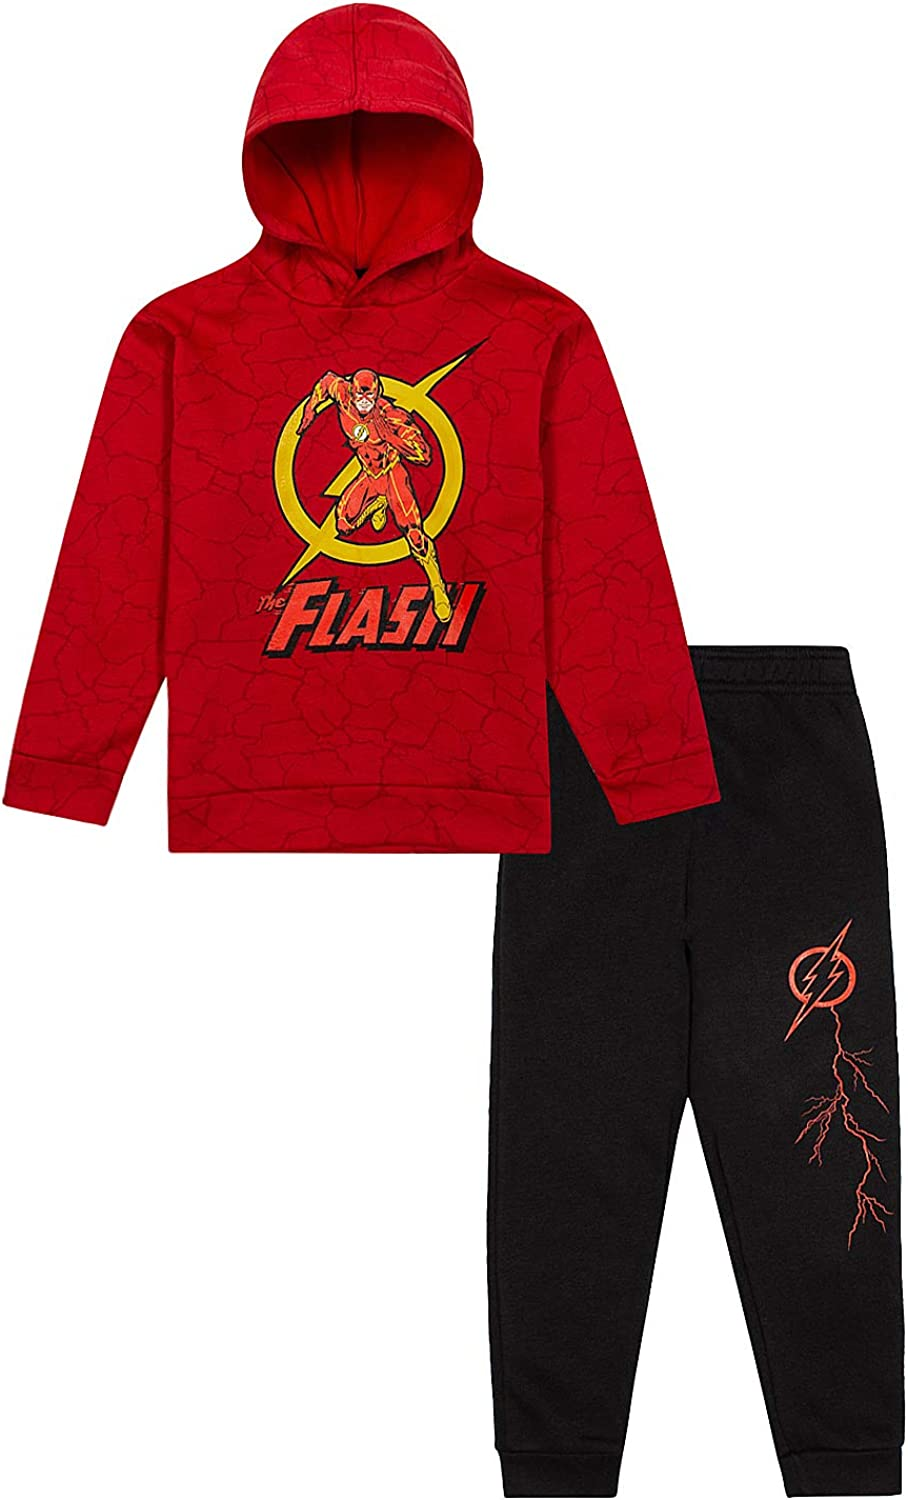 The Flash Kids Fleece Hooded Sweatshirt & Sweatpants 2 Piece...